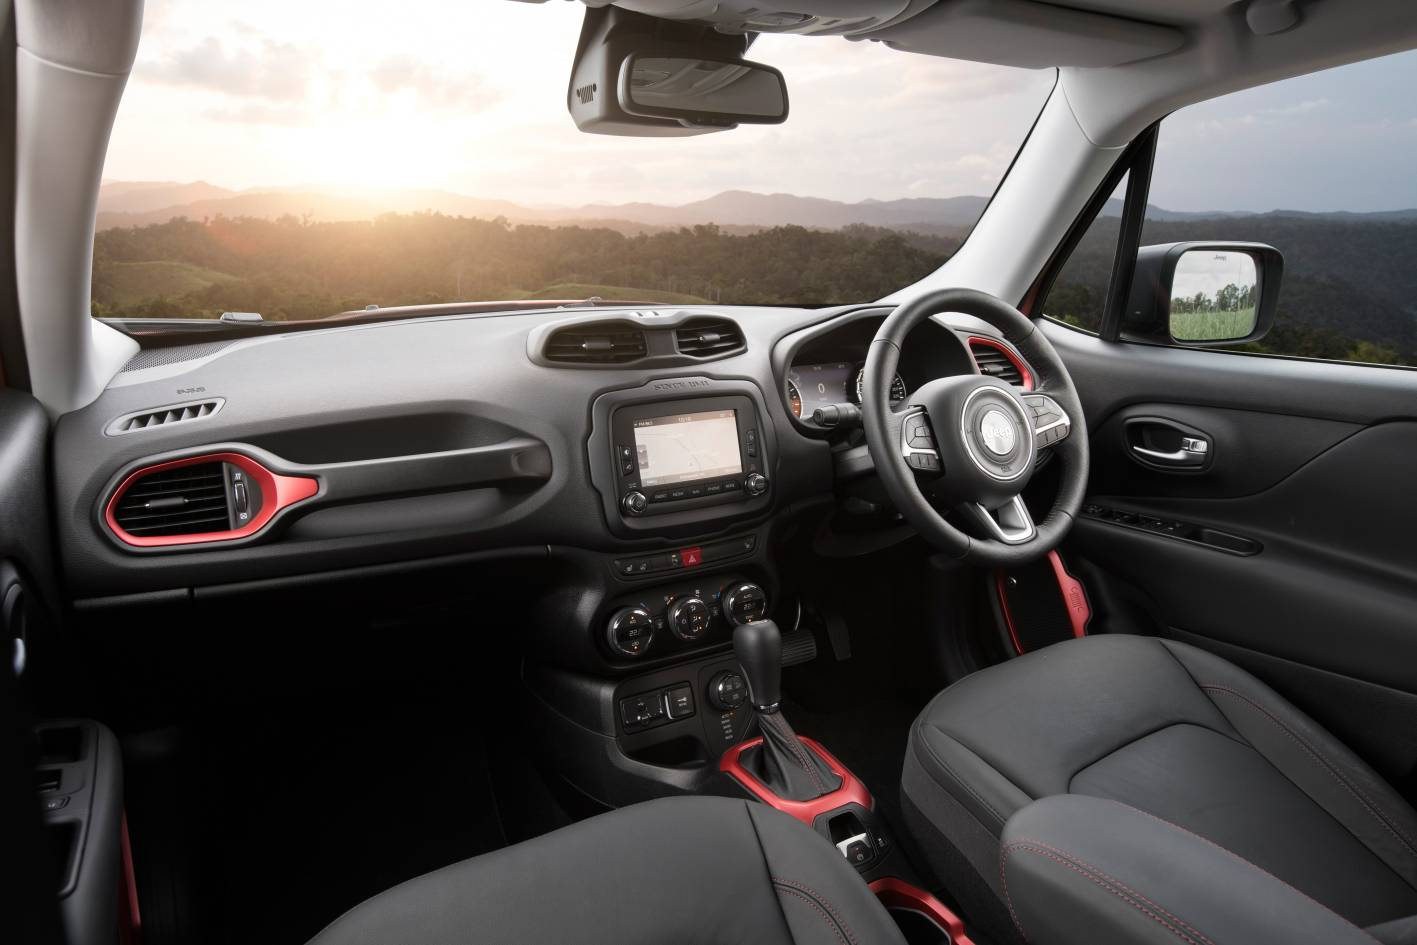 Jeep Renegade Pricing And Specification Announced